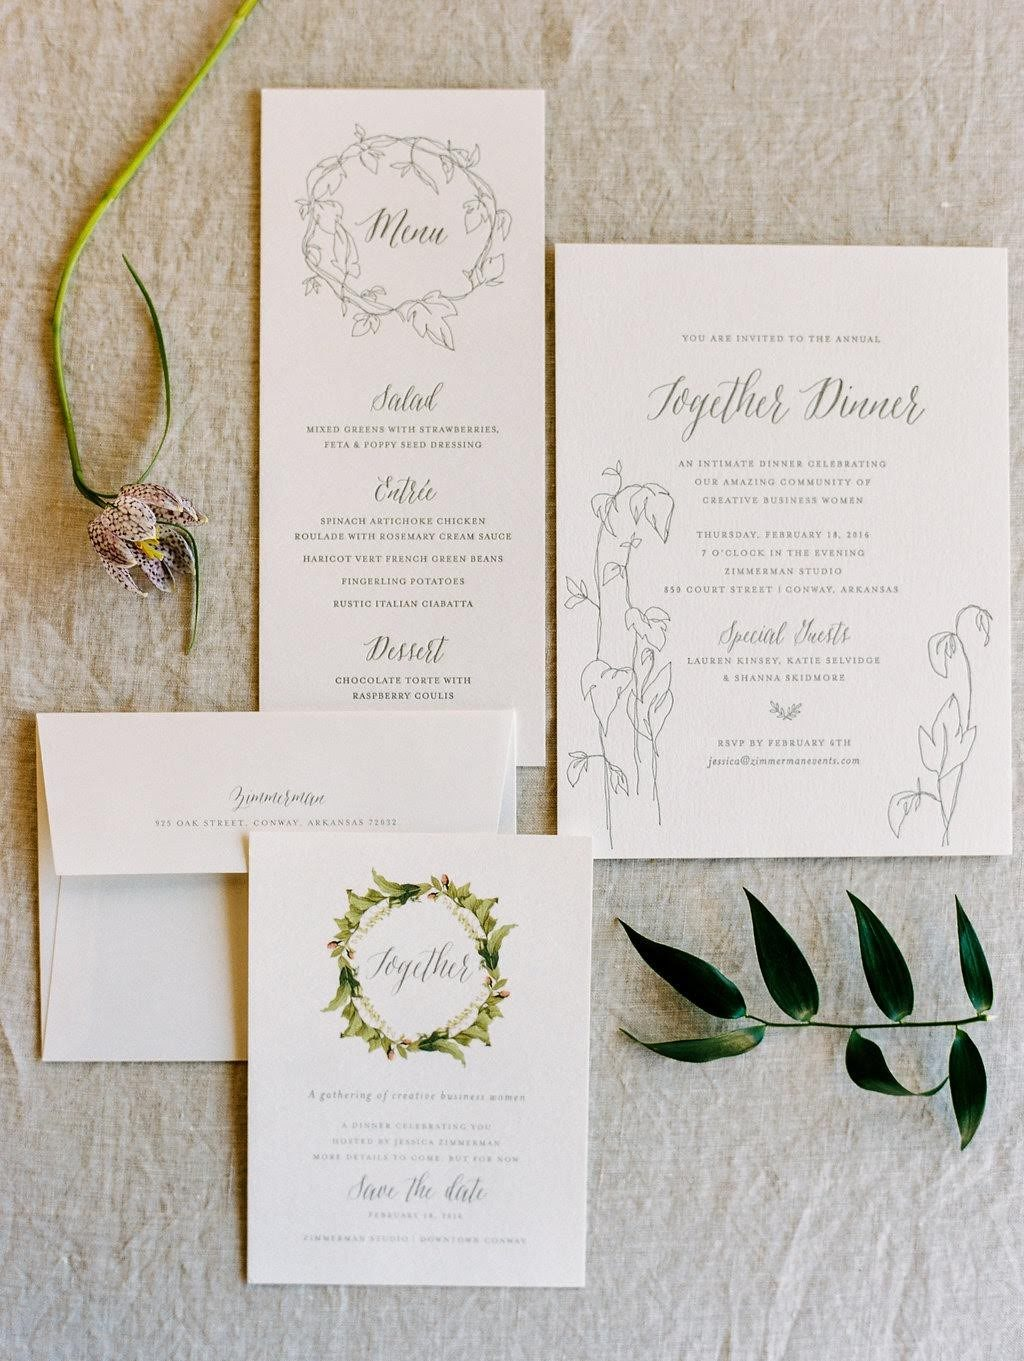 Letterpress invitations and menus from Bella Figura